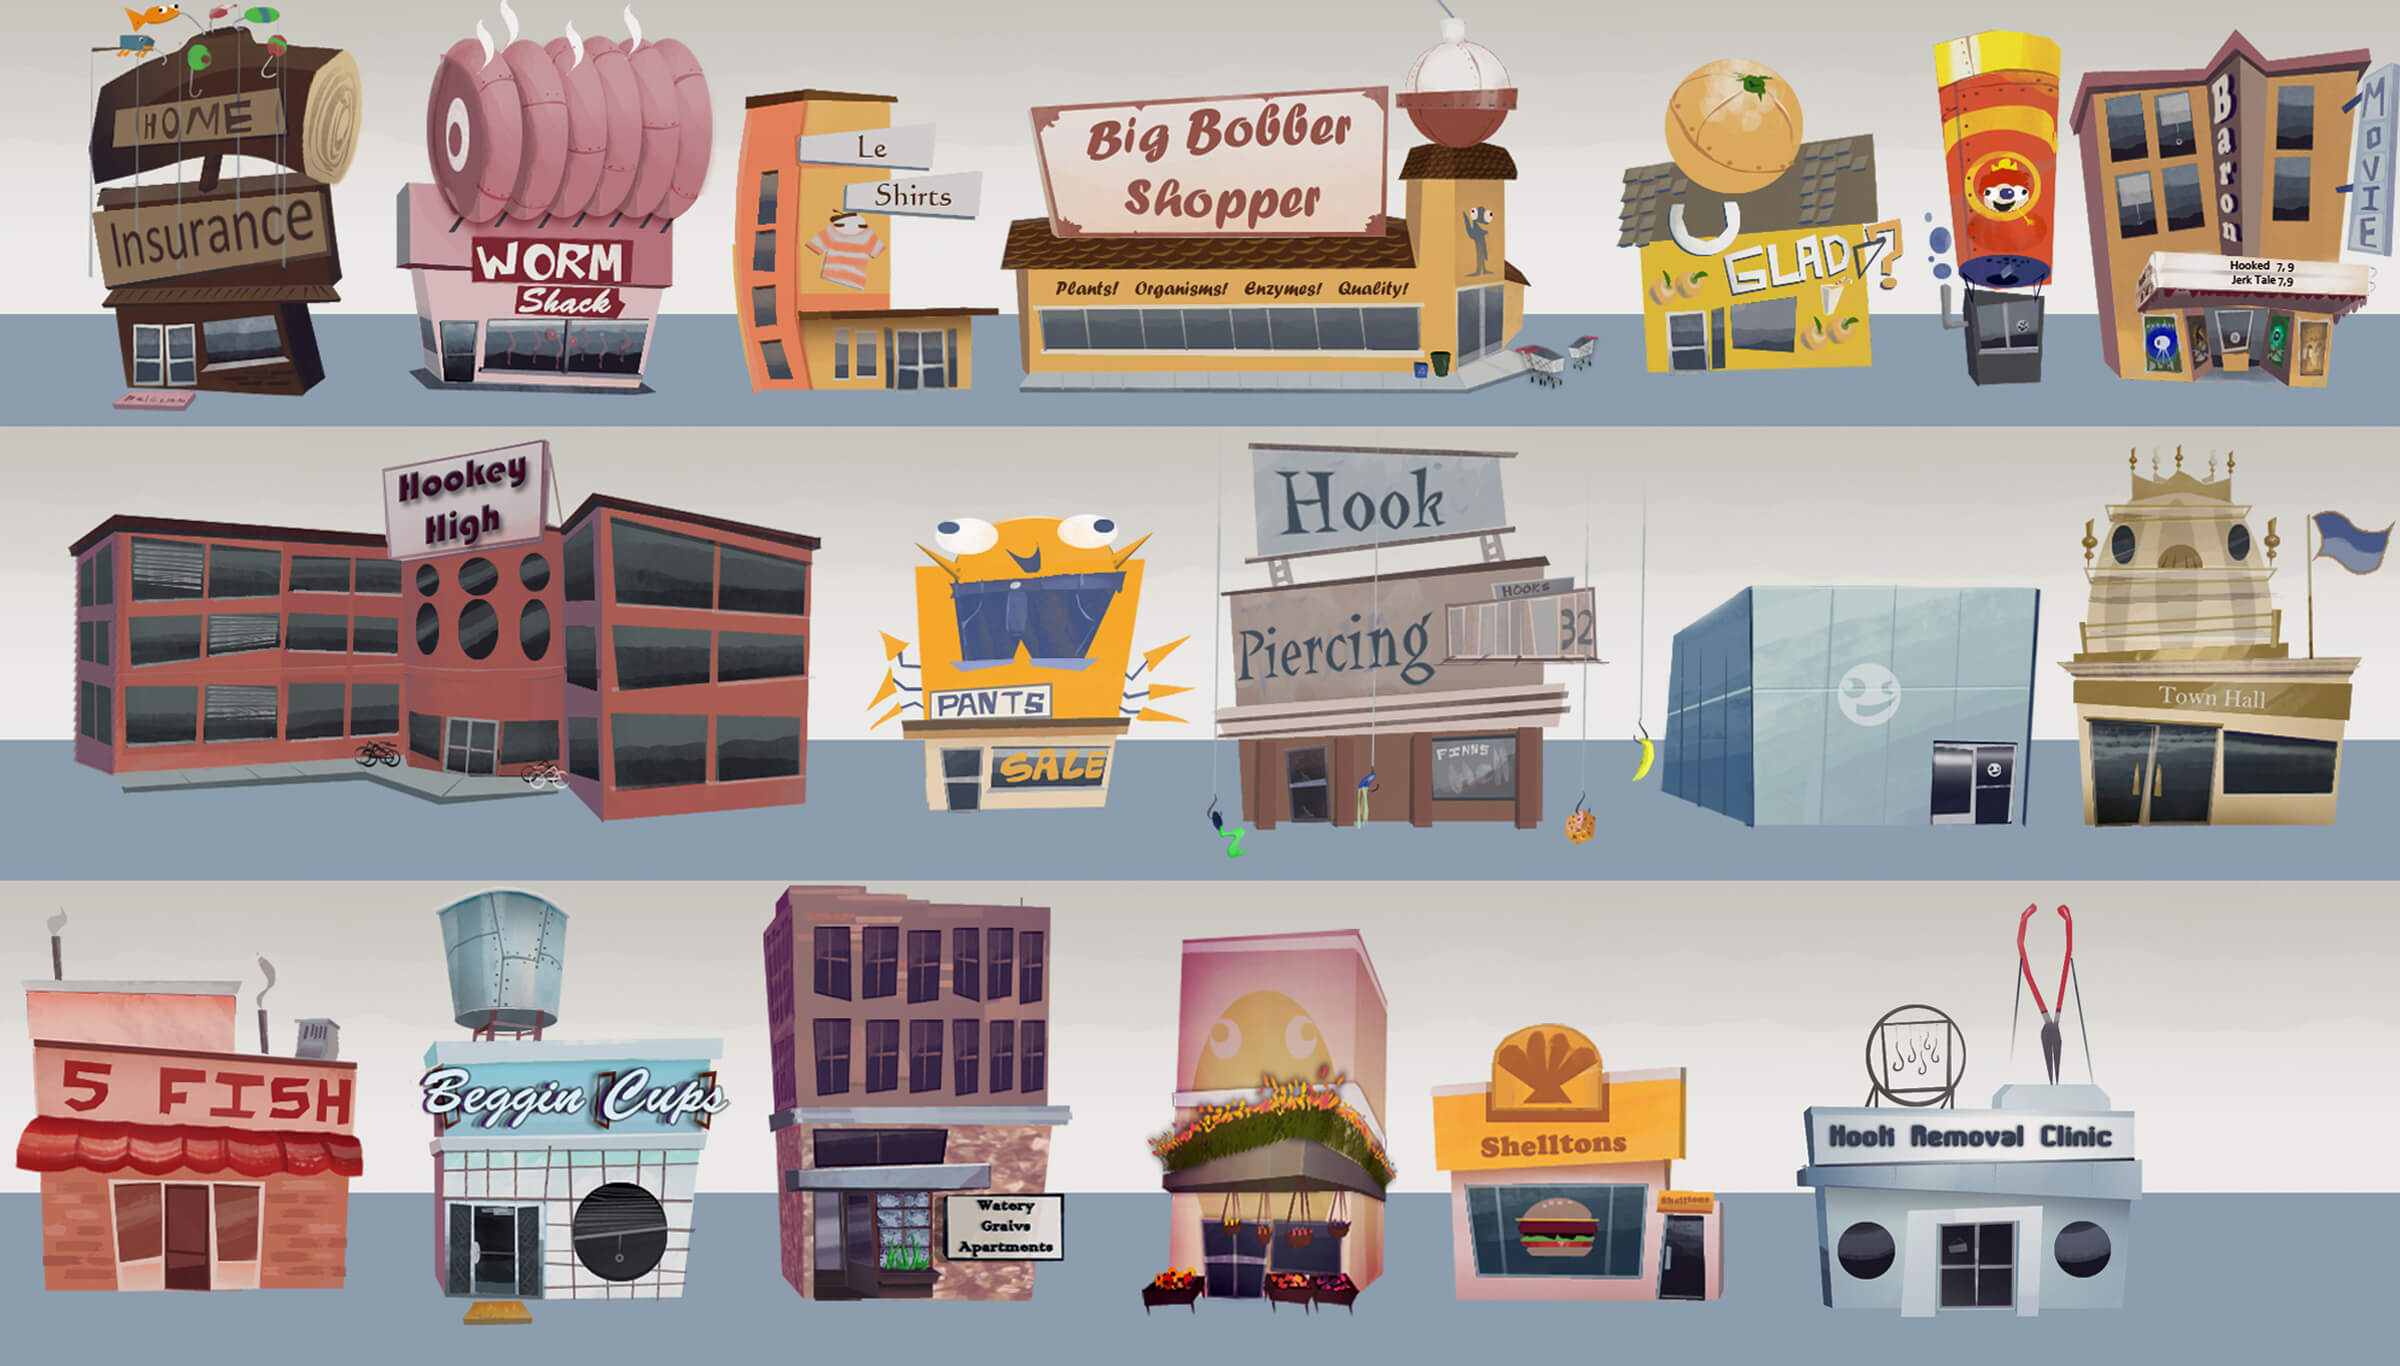 digital painting of various marine-themed buildings, including big bobber shopper and worm shack